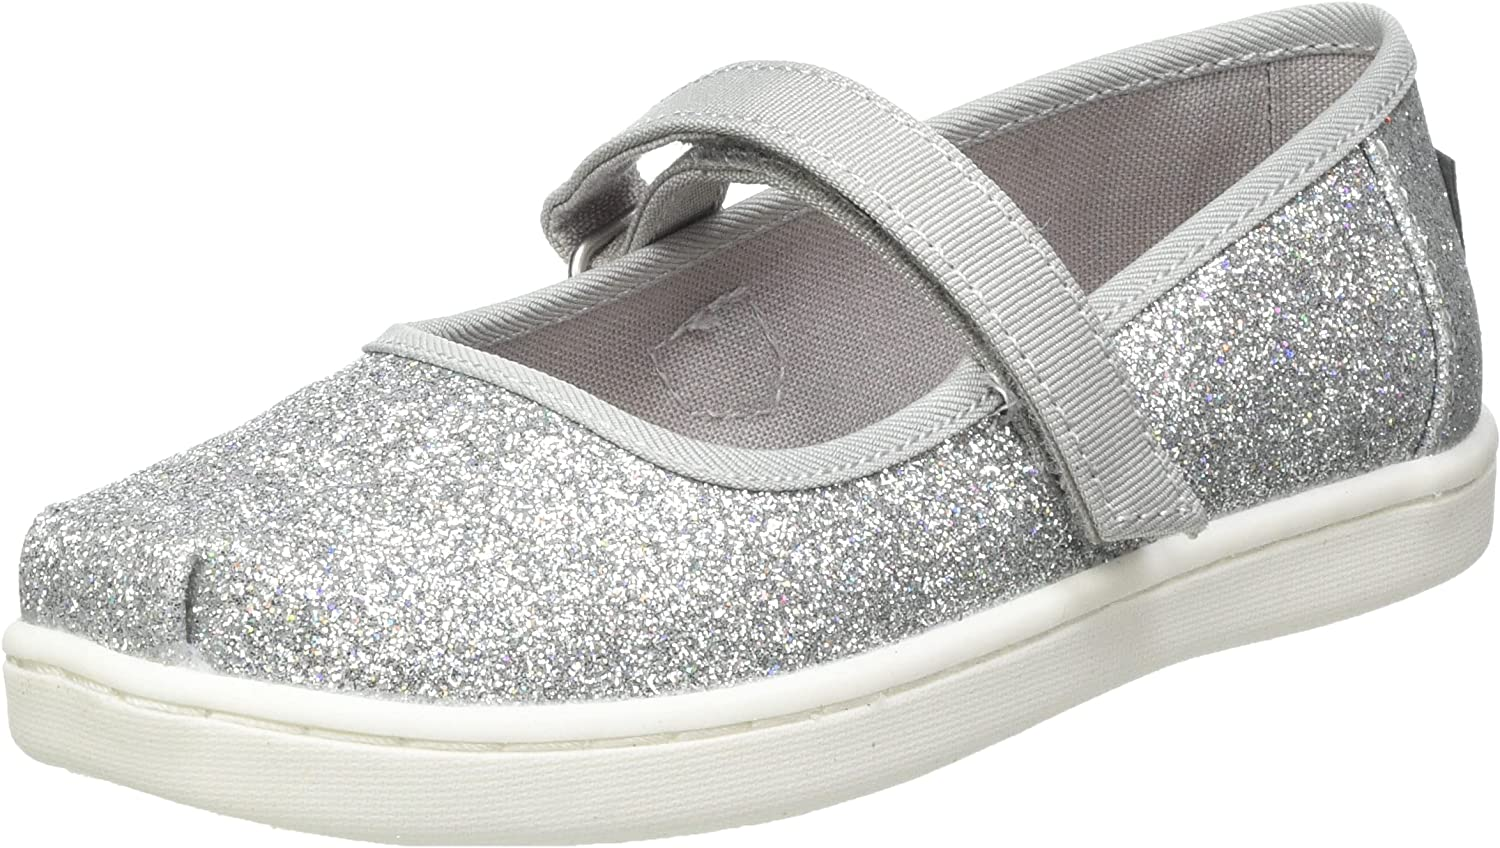 TOMS Latest Our shop OFFers the best service item Silver Iridescent Glimmer Tiny Siz 10011521 Flat Mary Jane